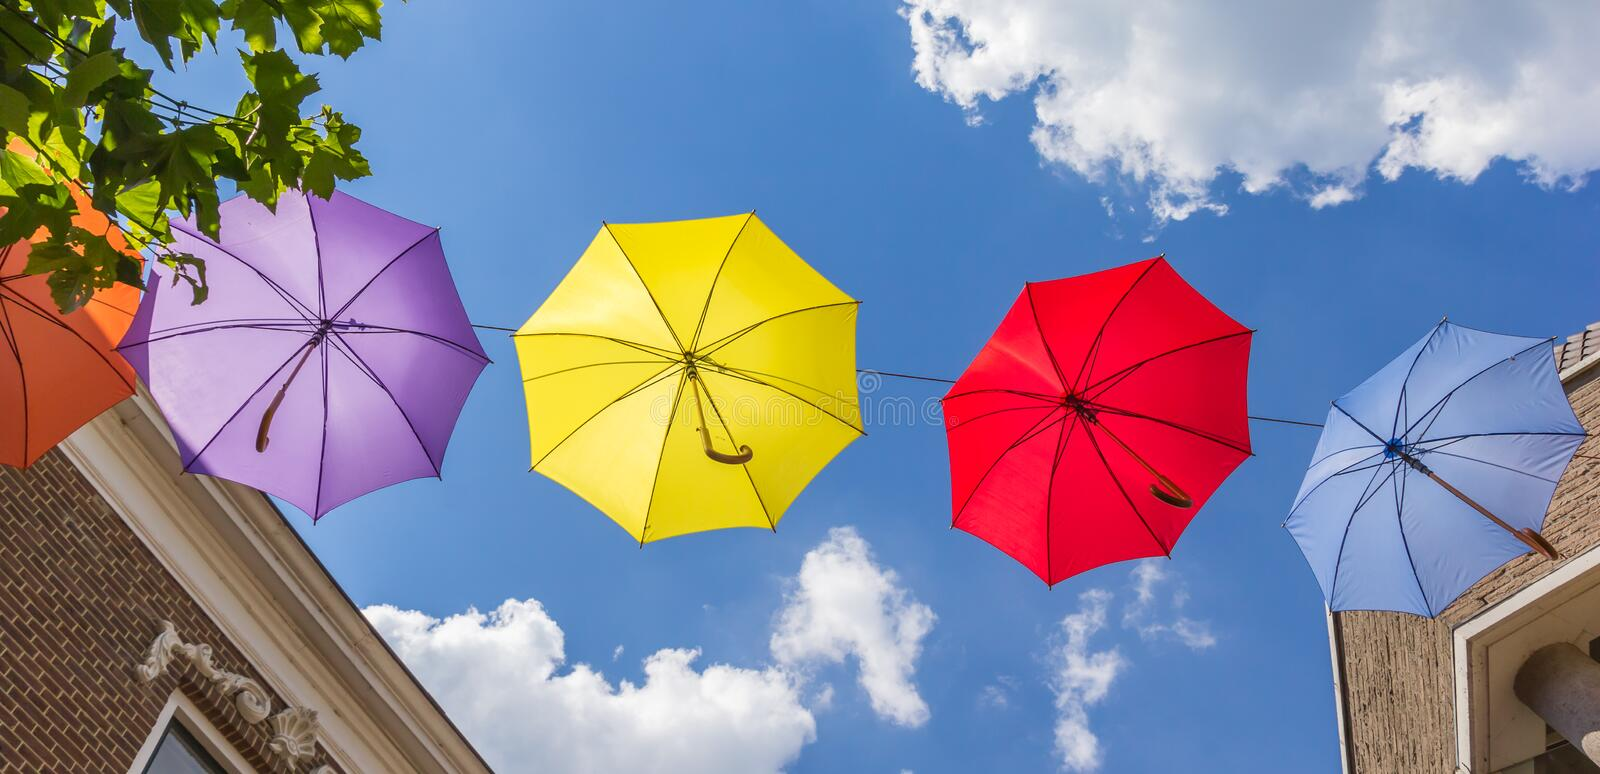 Colorful umbrellas hanging between buildings in Lochem. Netherlands stock photography